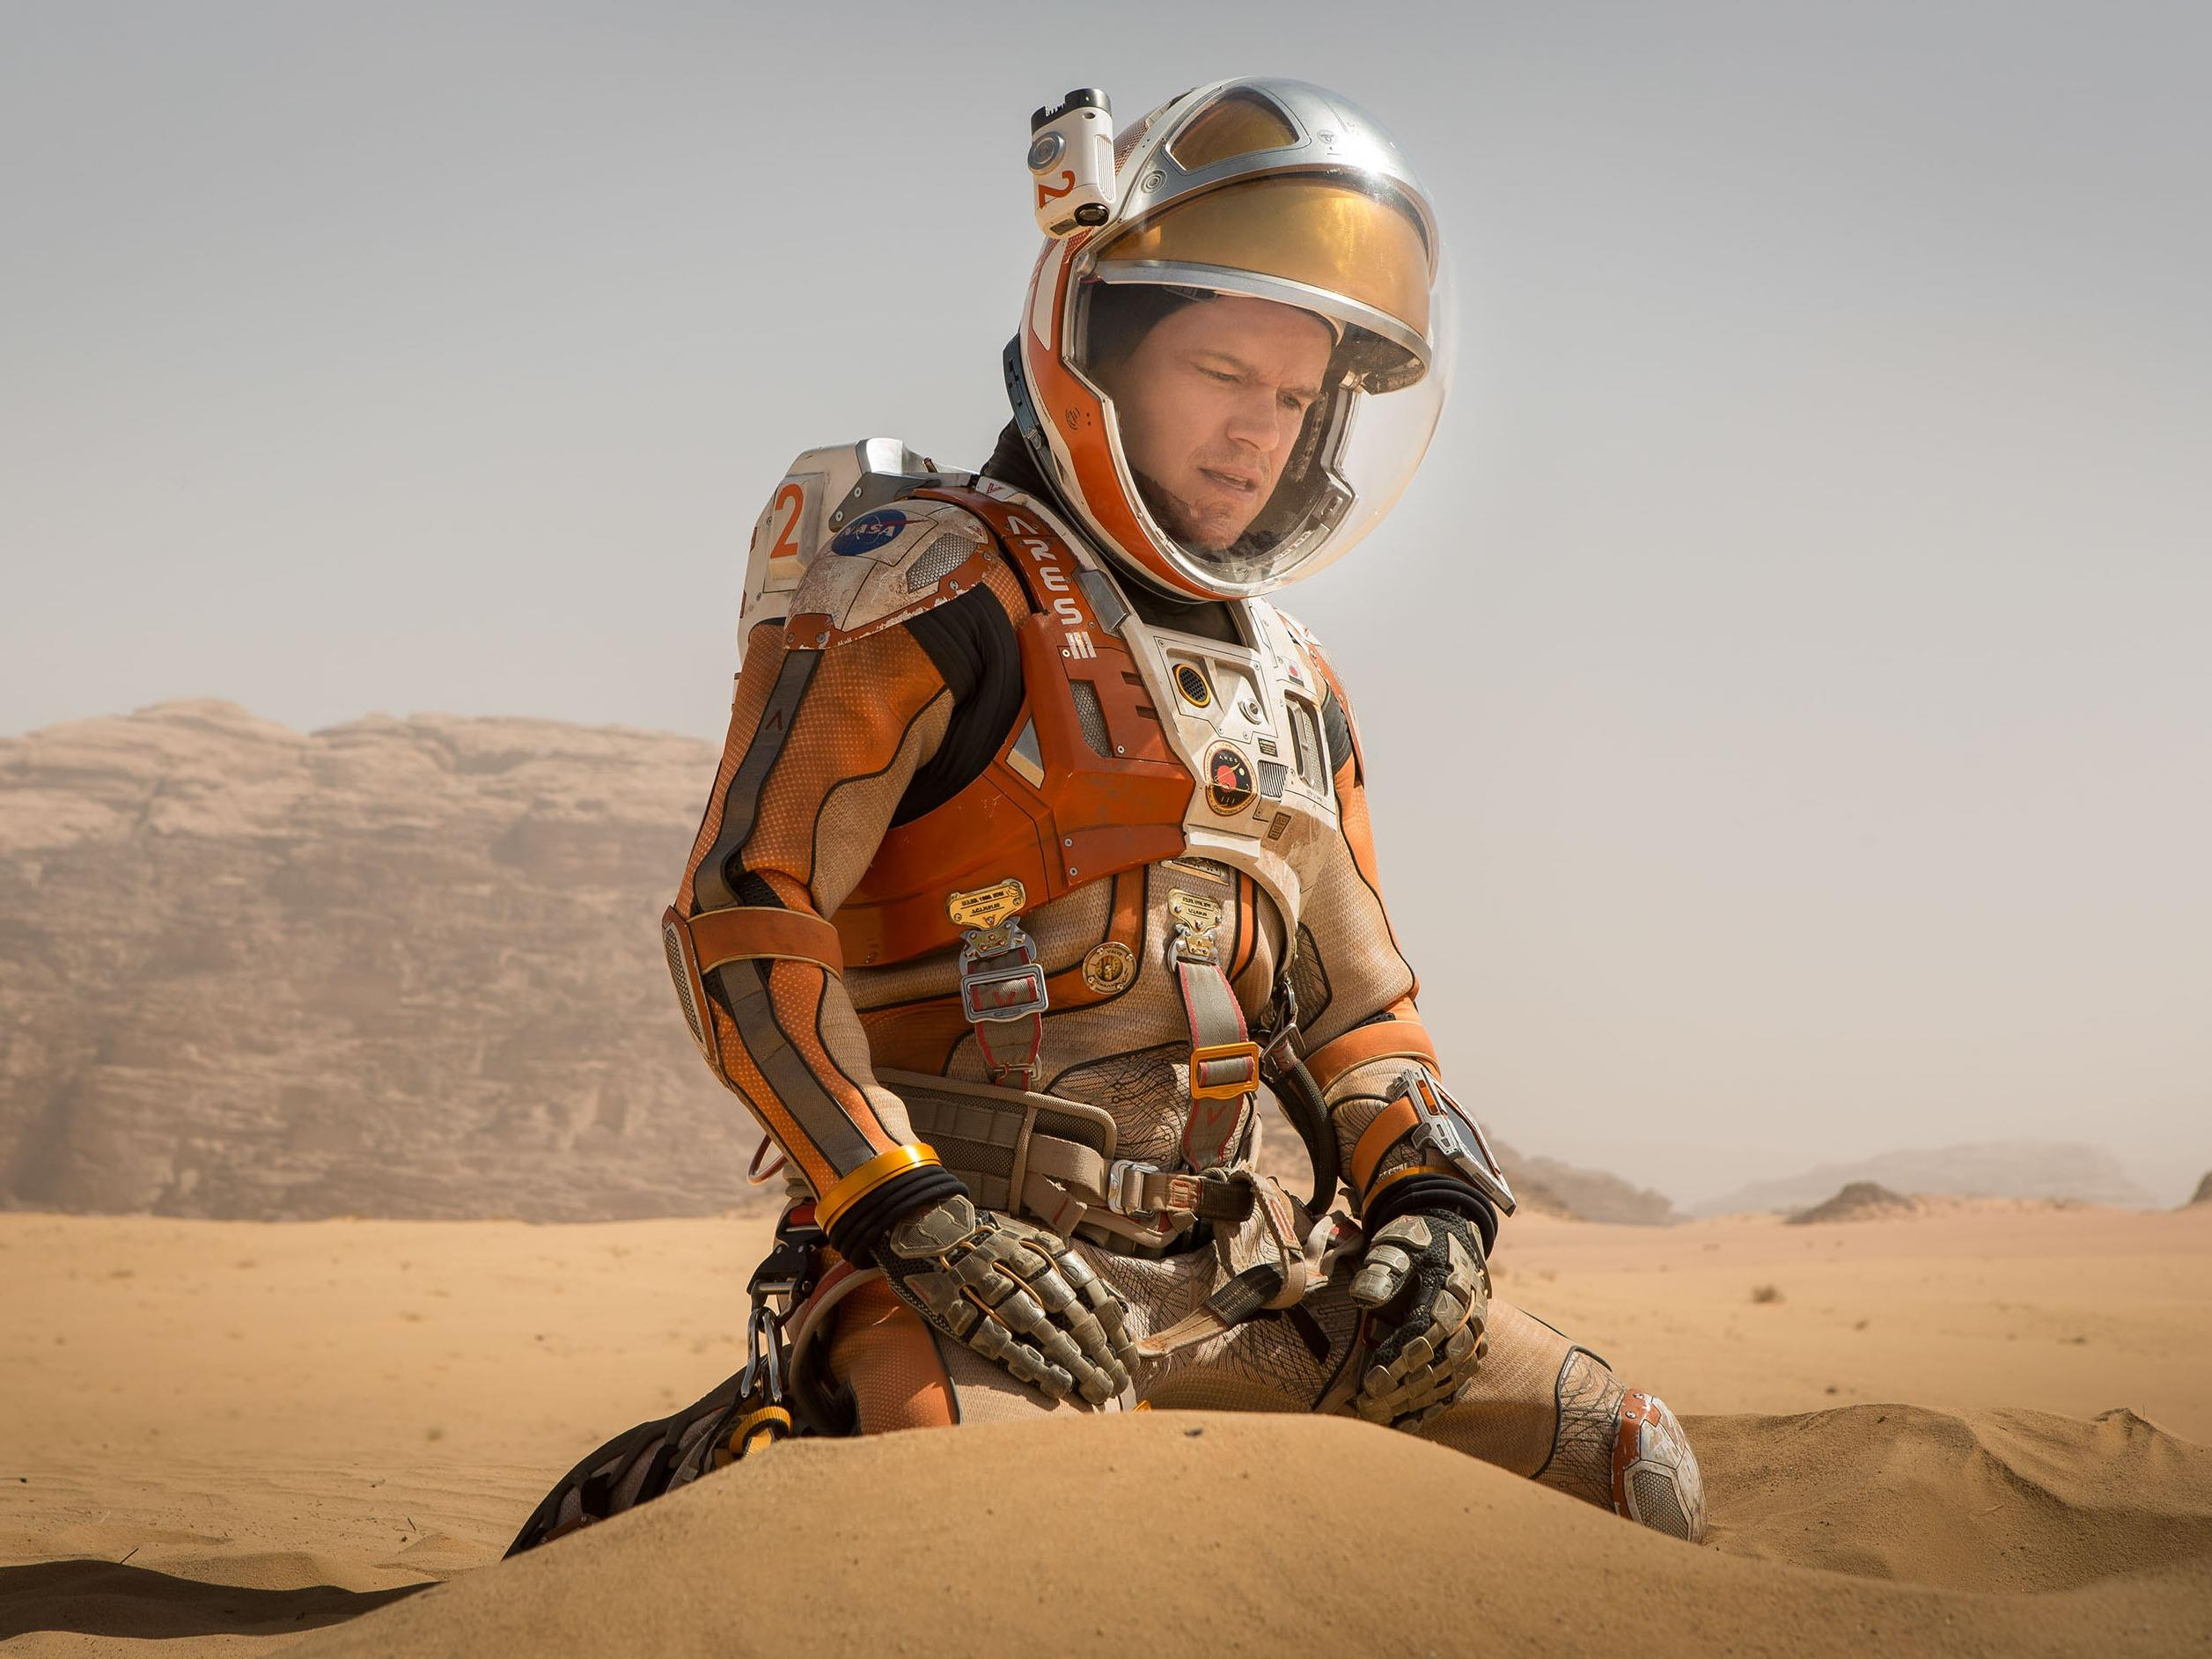 Stunning close-up photos of exactly where Matt Damon would be if he really were on Mars